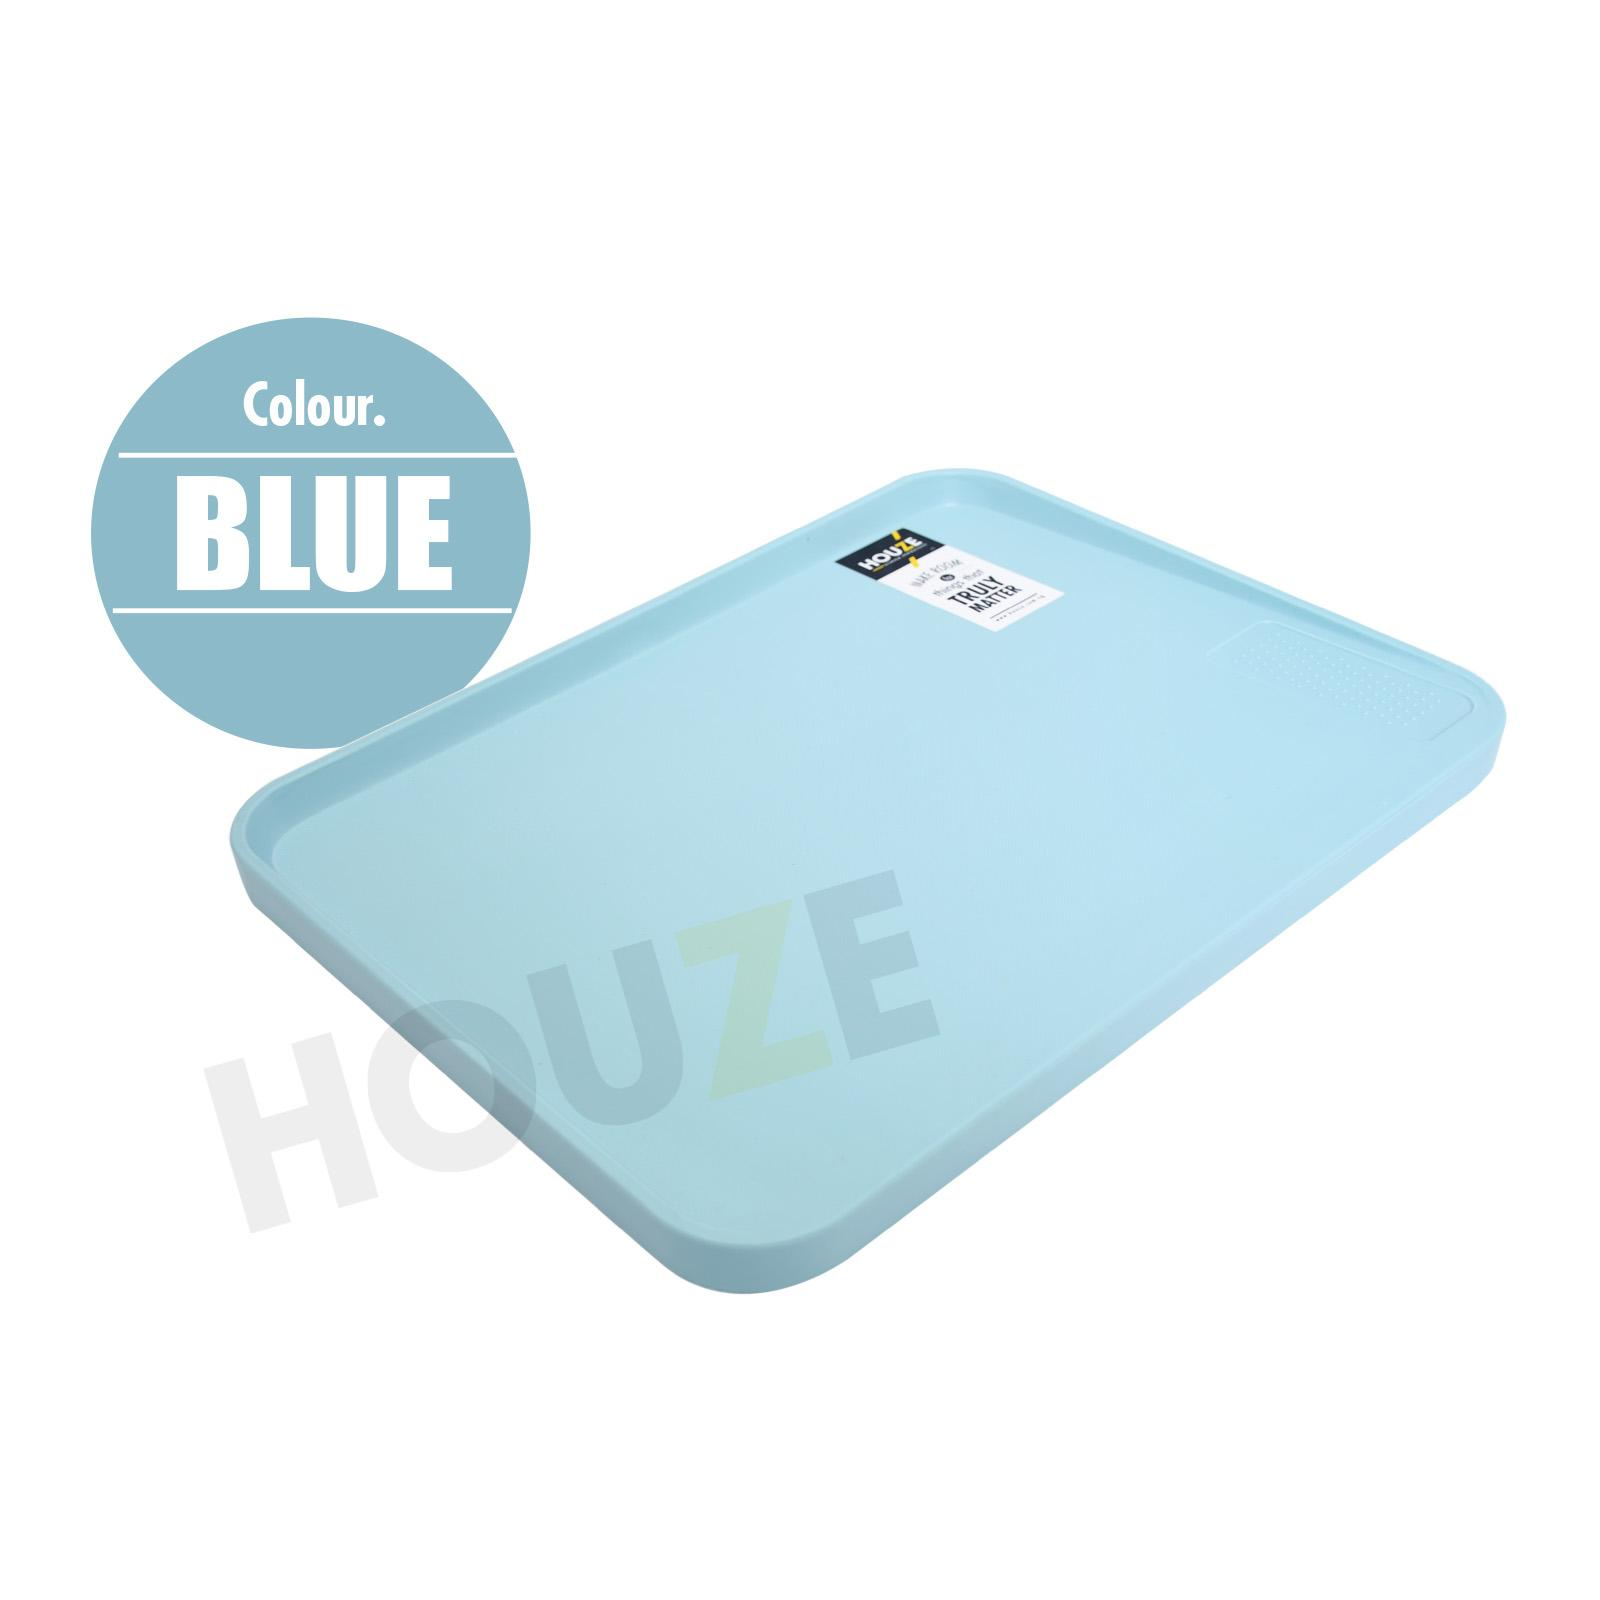 Where Can I Buy Houze Gradient Chopping Board Large 37X28X2Cm